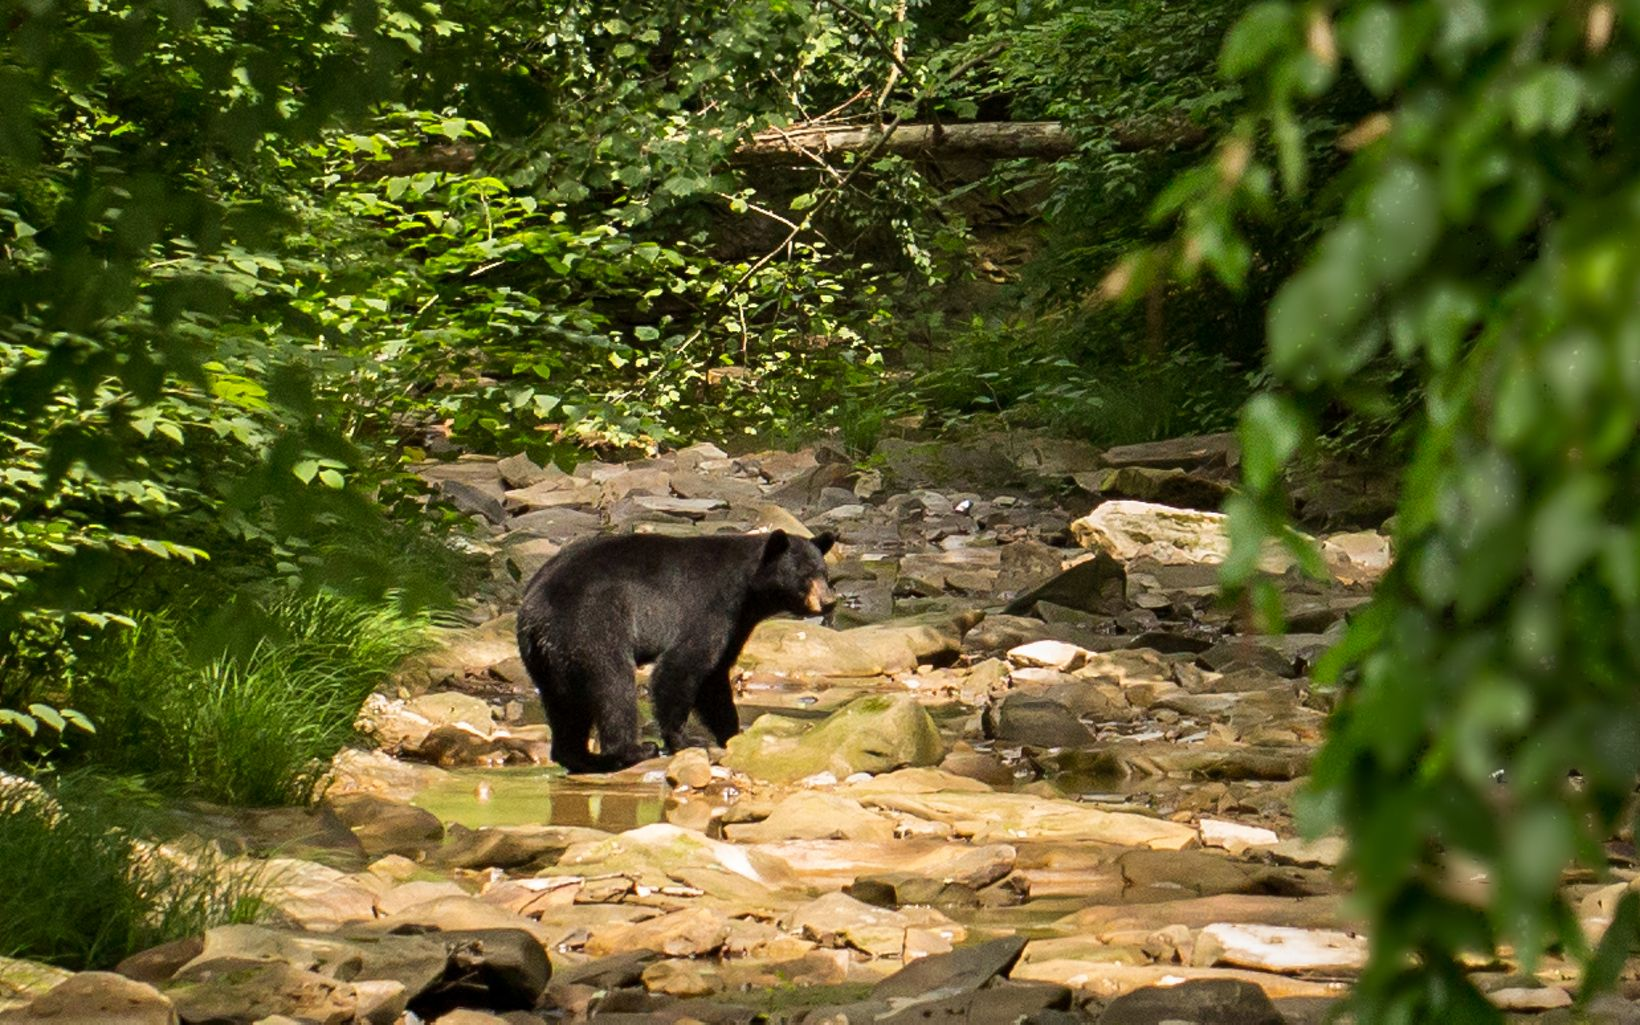 A black bear wades in a rocky creek.